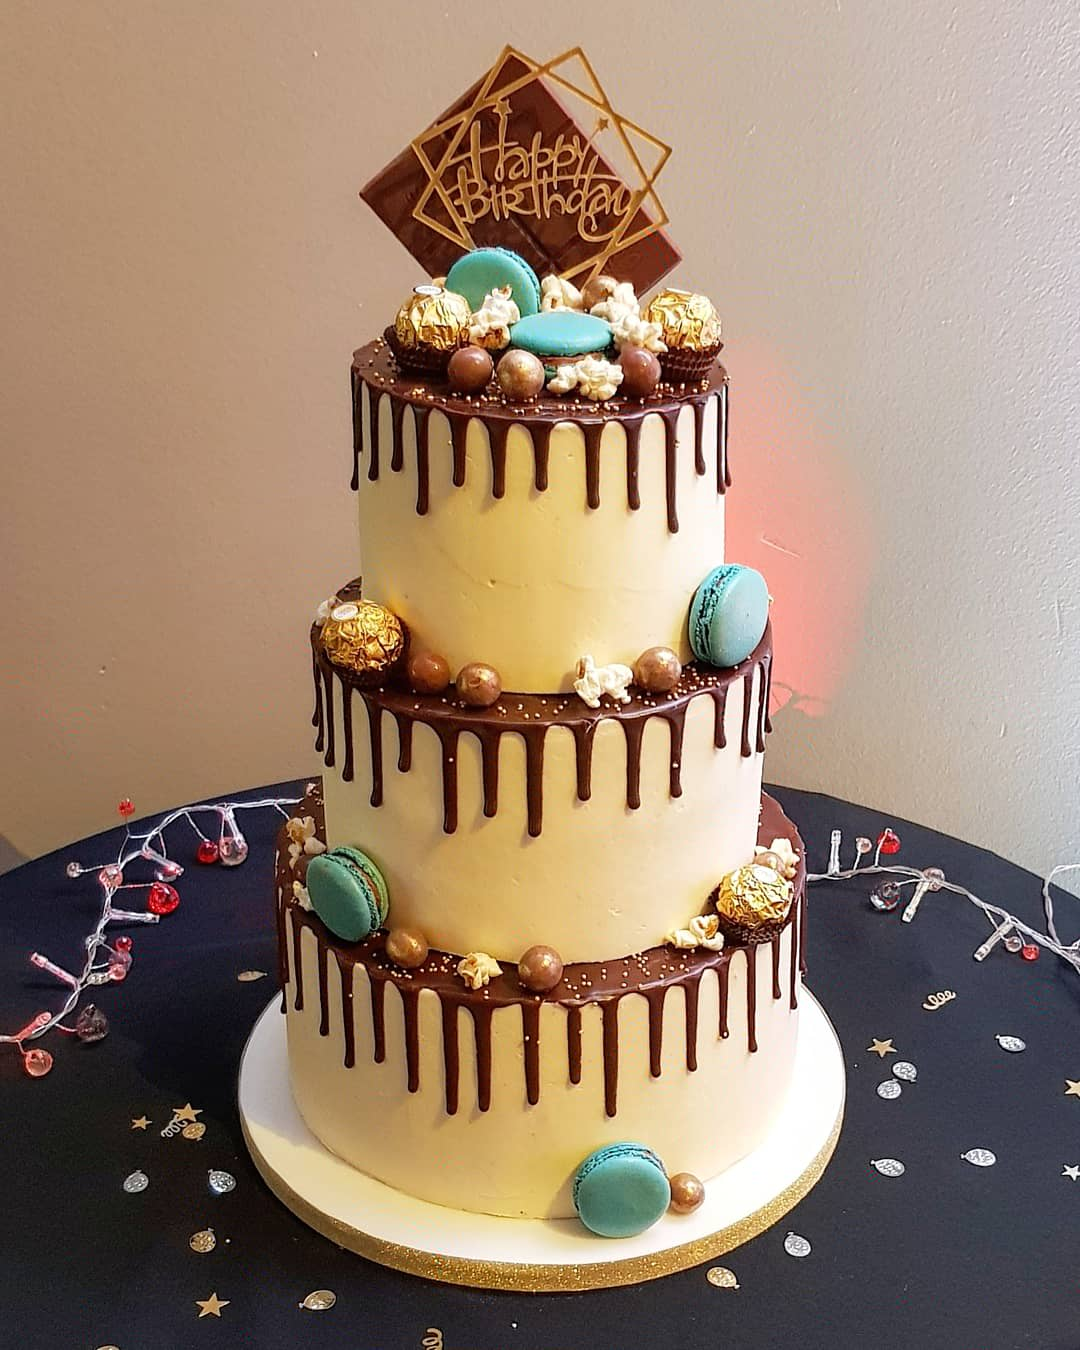 A Piece Of Cake – Cakes for all occasions